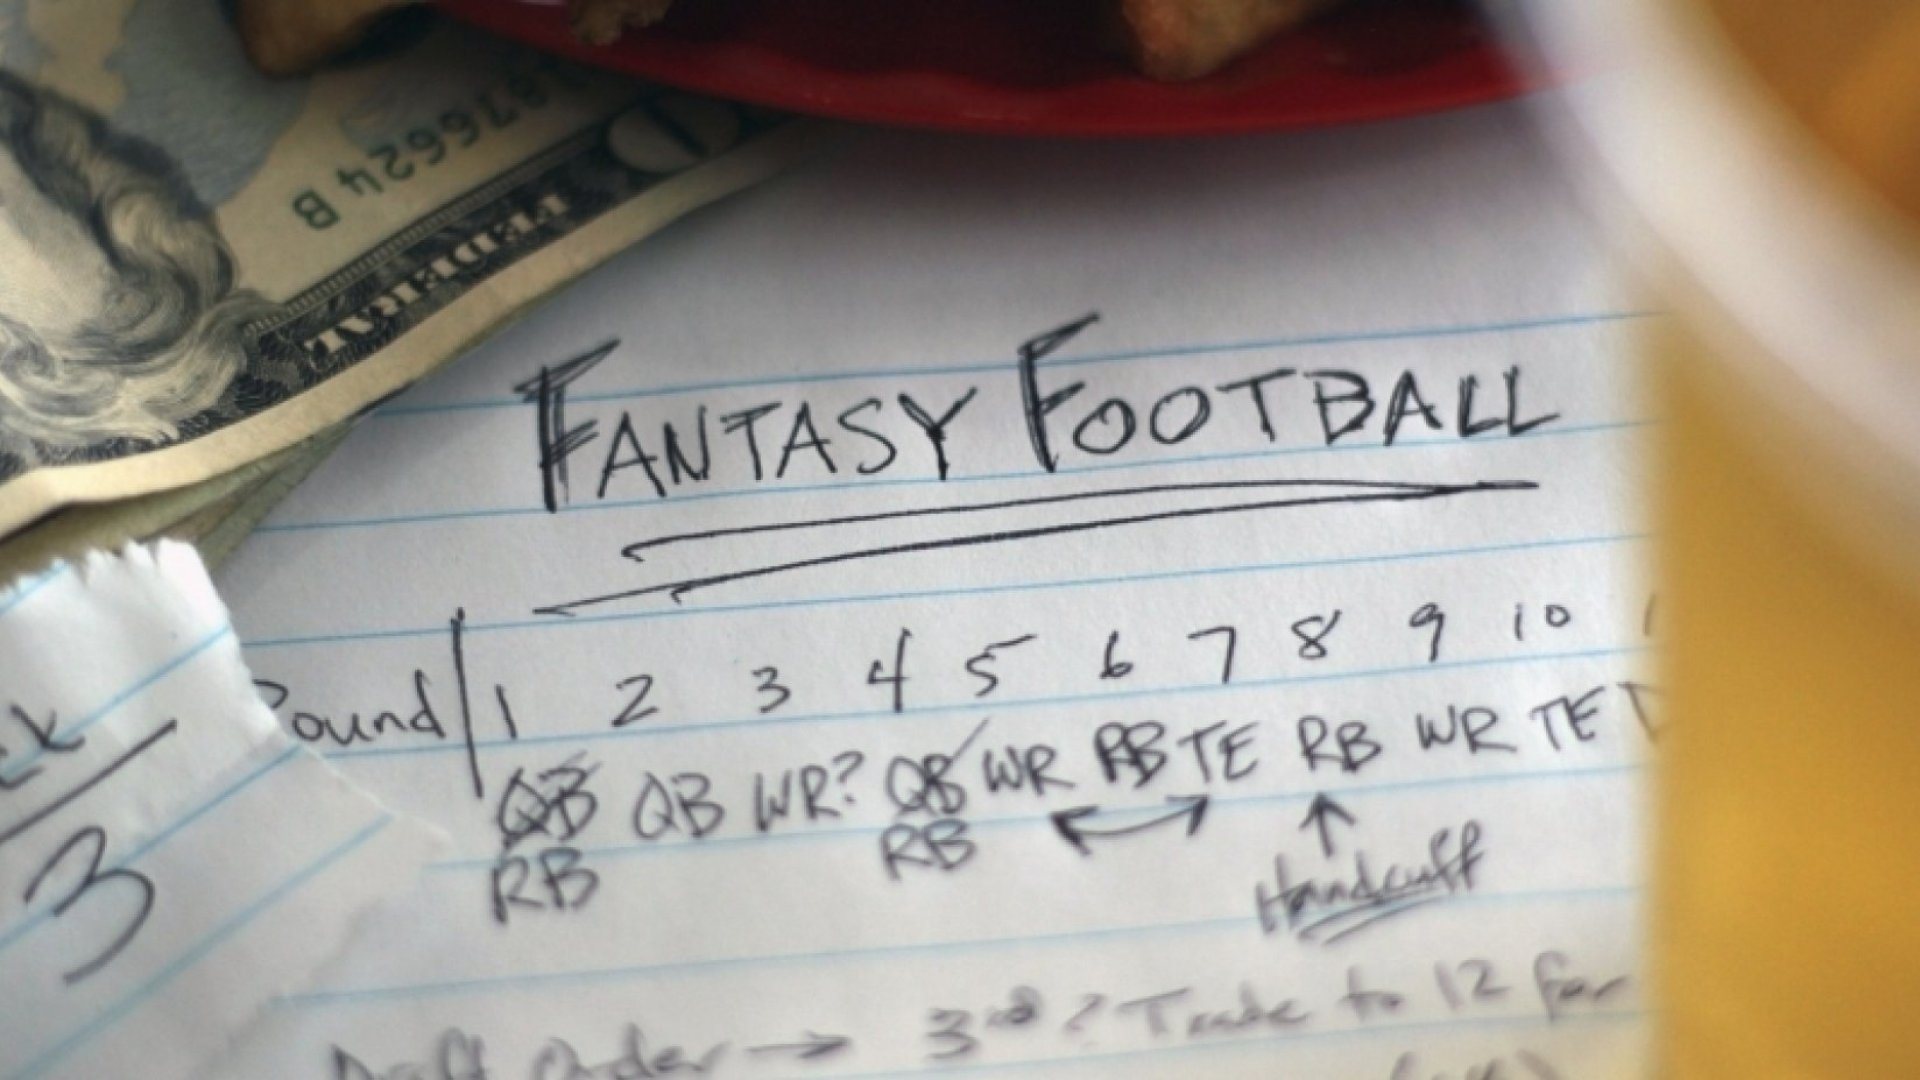 Daily Fantasy Sports AreIllegal in New York, but the IRS Still Gets Its Cut